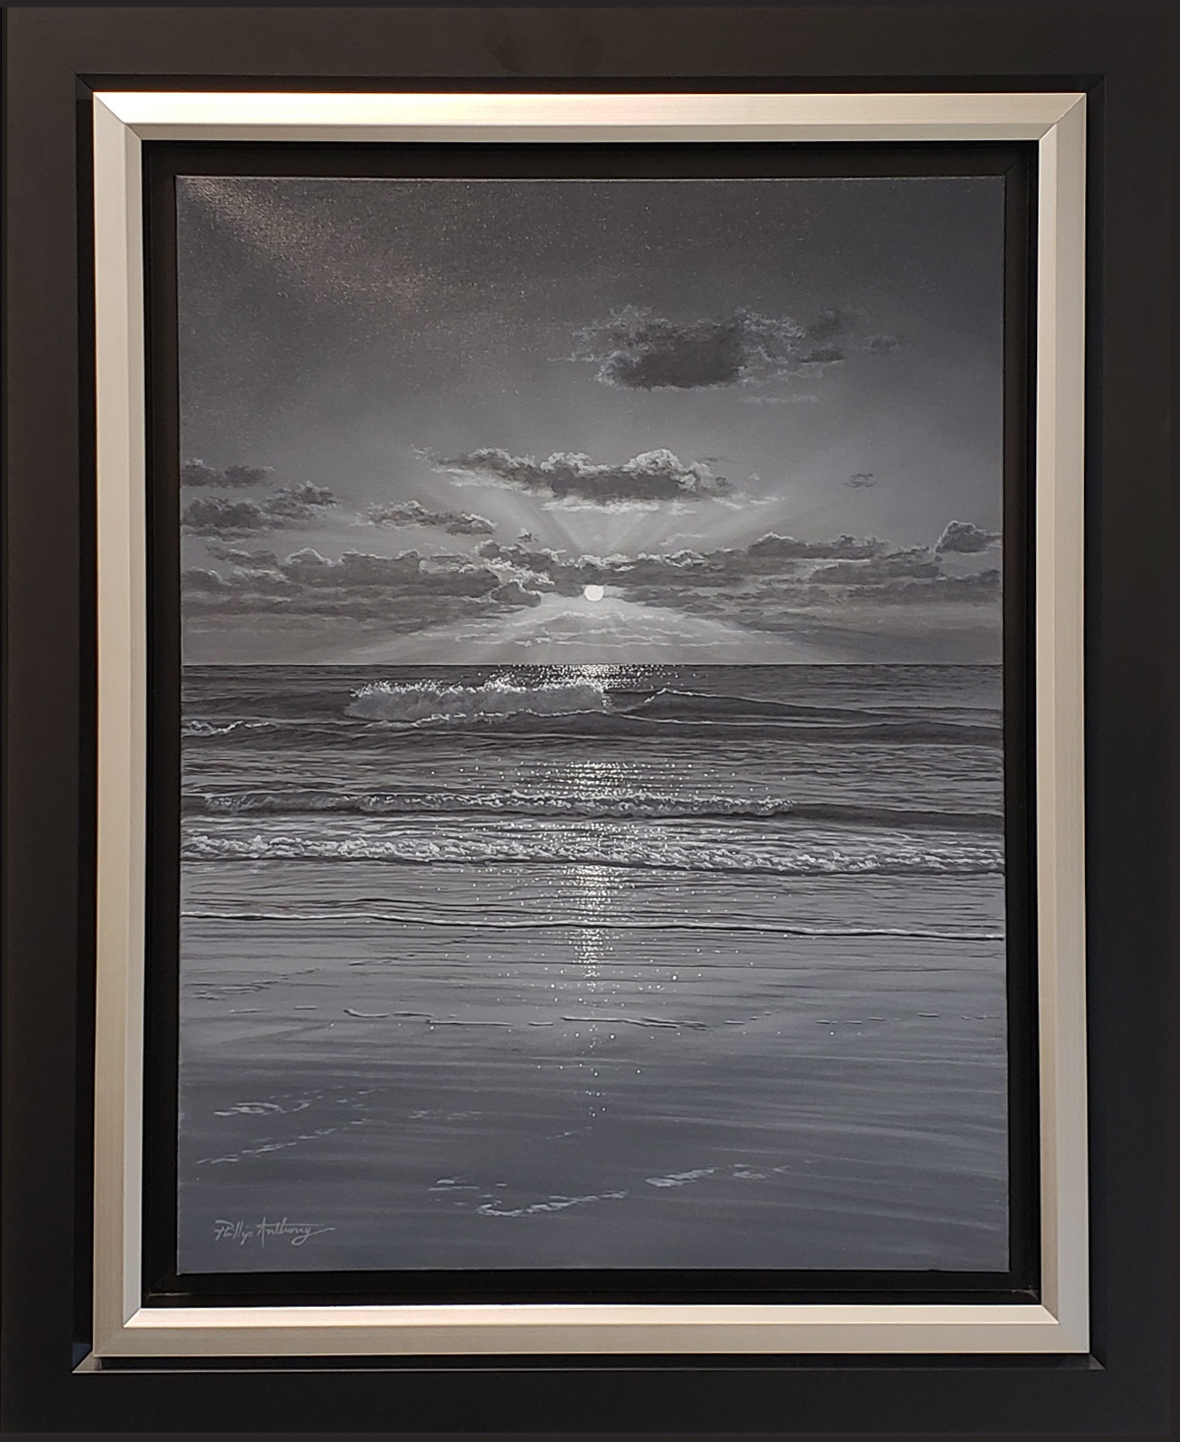 Phillip Anthony Untitled (Original, Framed)